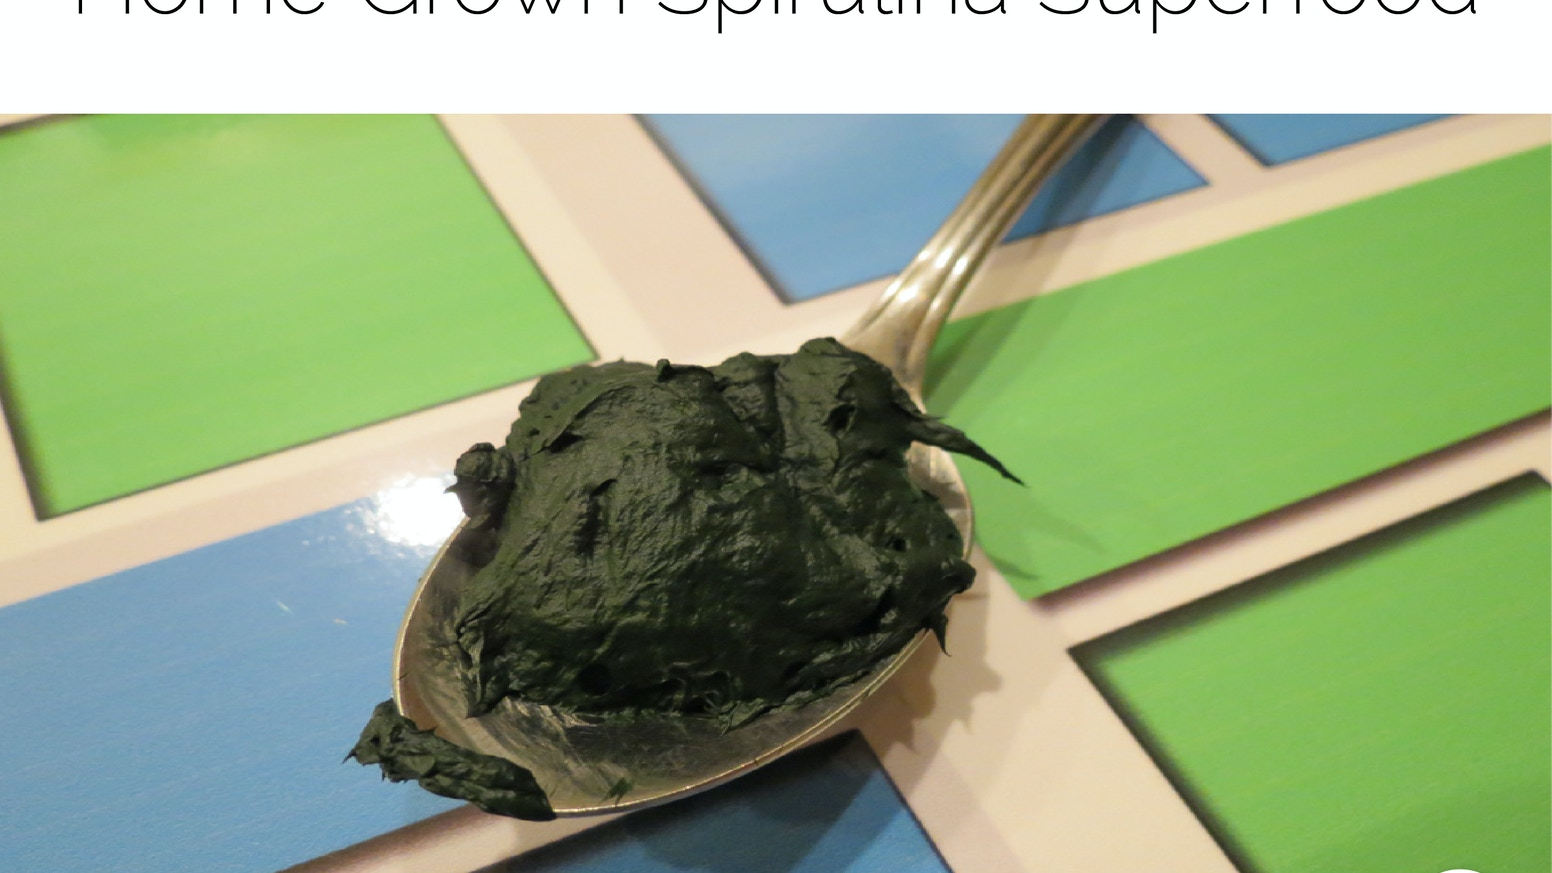 Start growing fresh spirulina superfood. Our kits make it easy for anyone to grow and harvest spirulina.